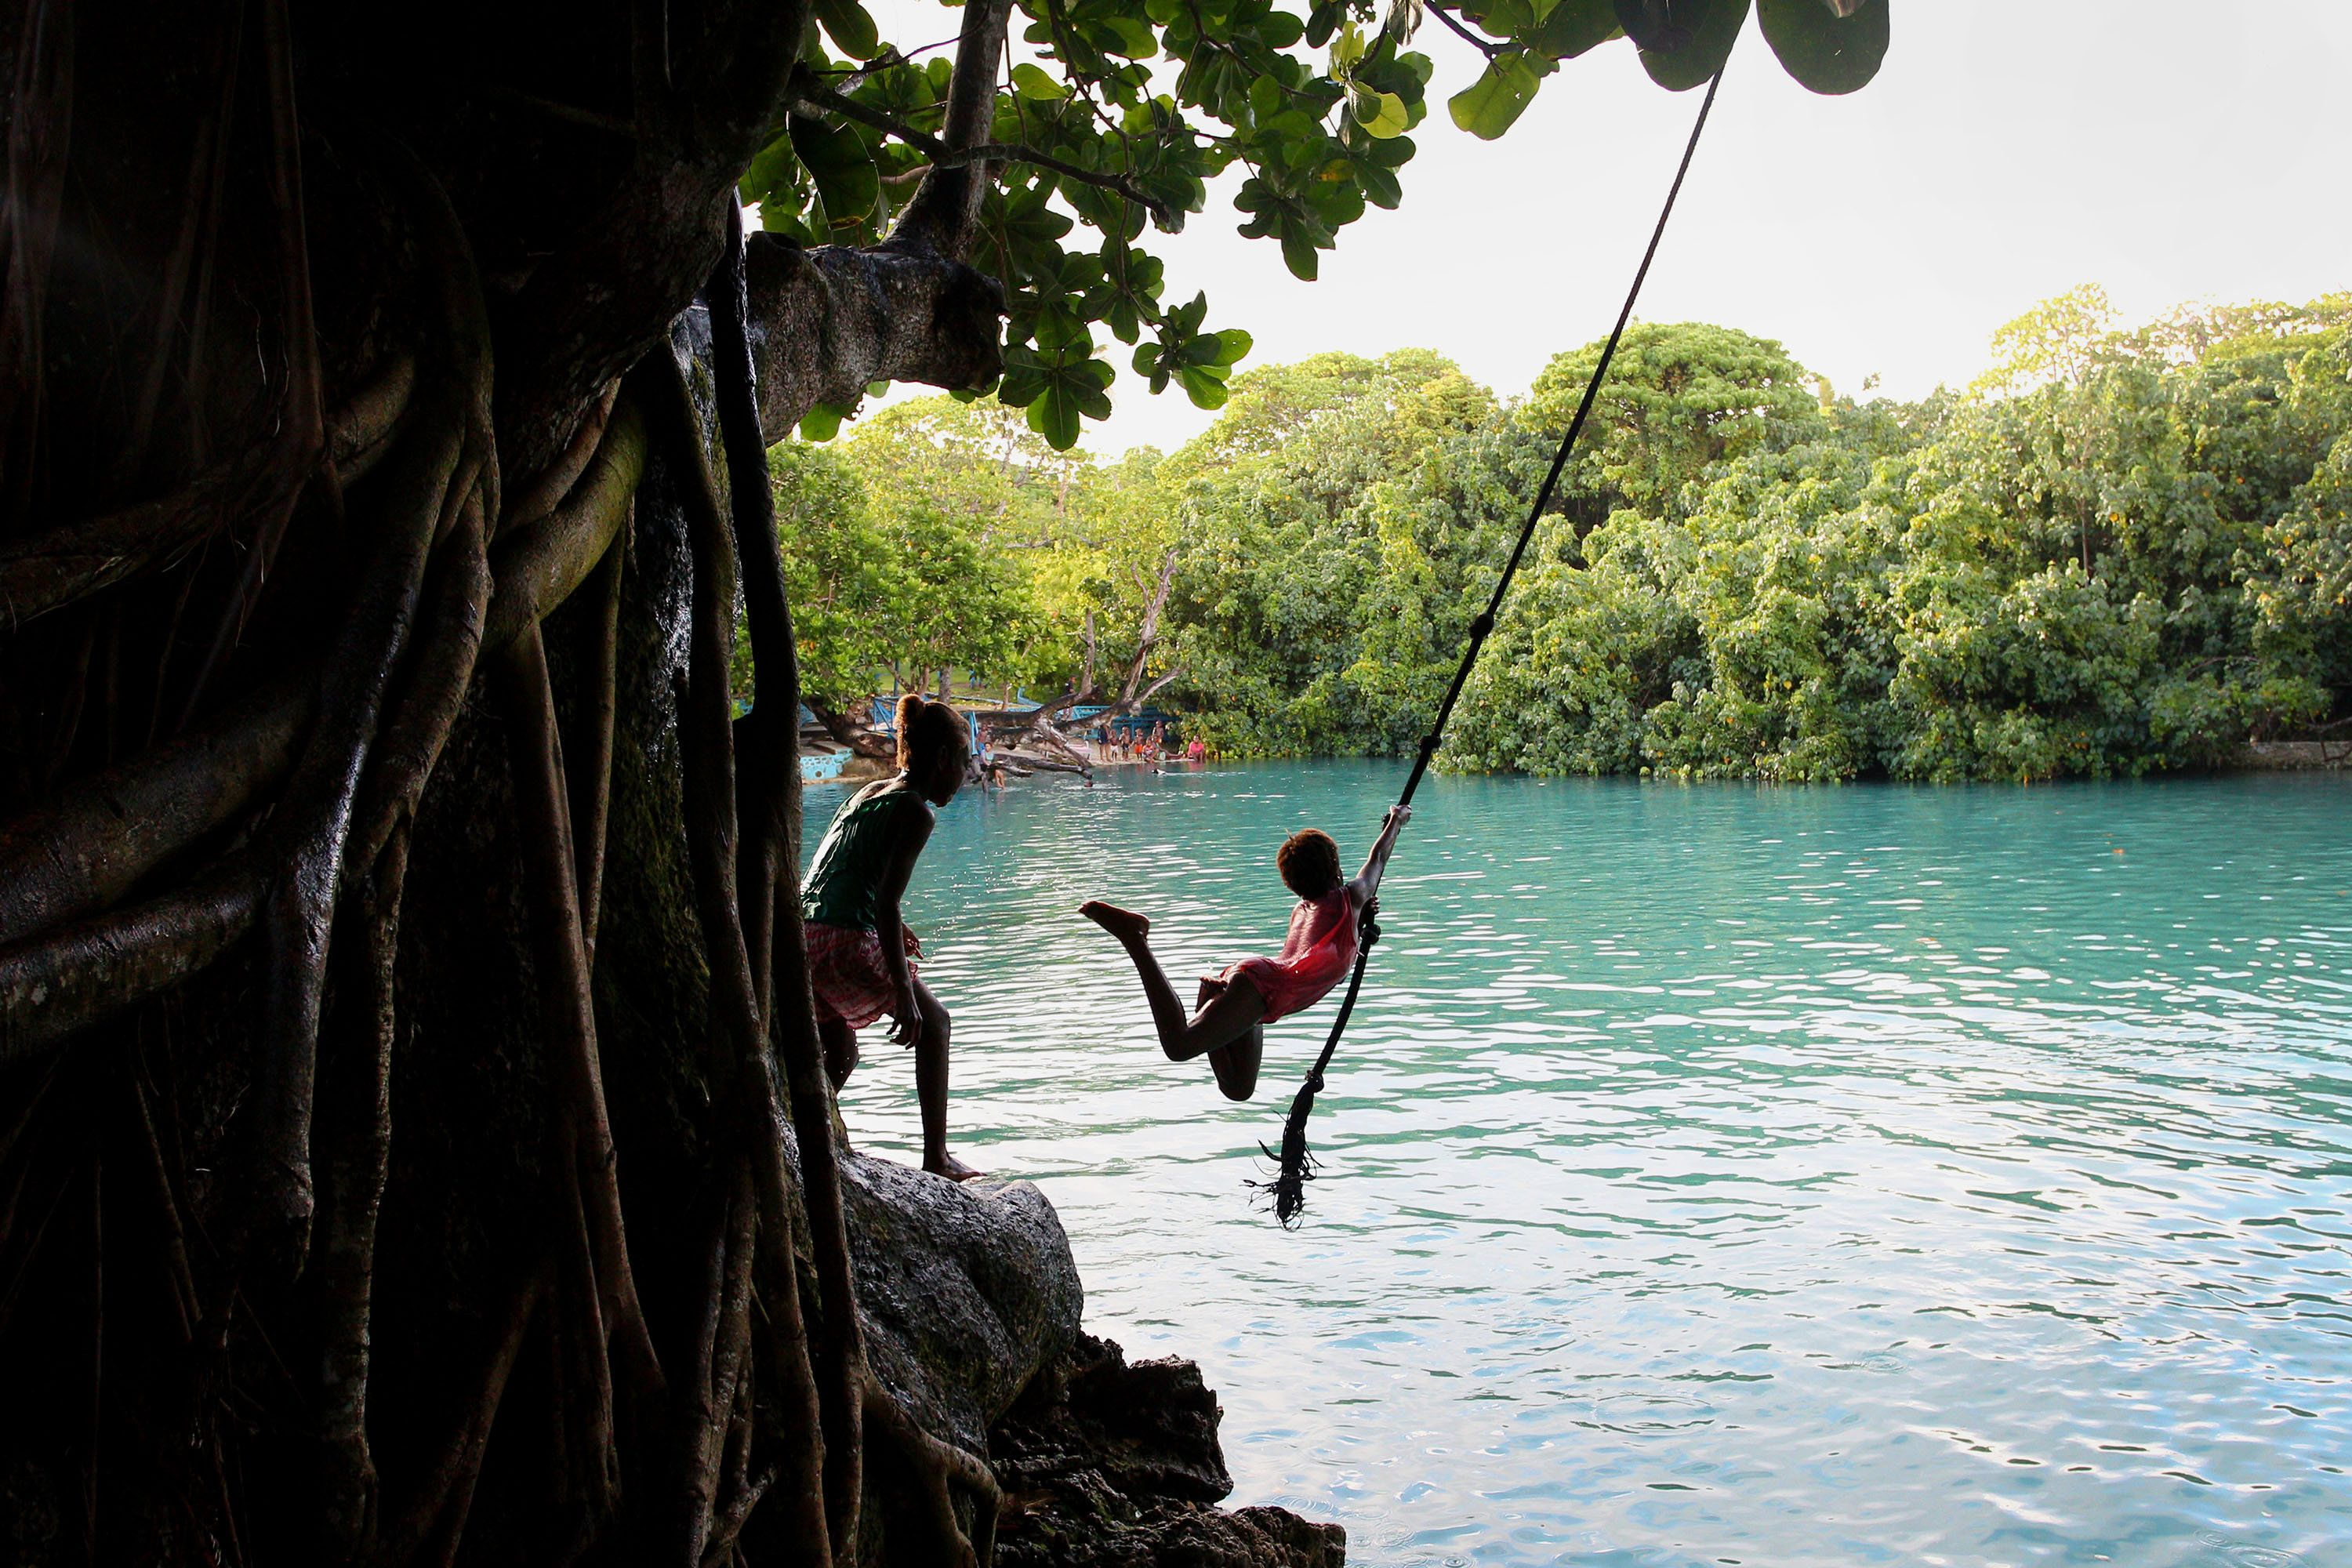 EFATE ISLAND, VANUATU - JANUARY 07: Young local children play and cool-off at the Blue Lagoon swimming hole on January 07, 2019 in Efate, Vanuatu. Vanuatu banned all single-use plastic bags last July in an effort to safeguard ocean health and cut back on urban pollution.